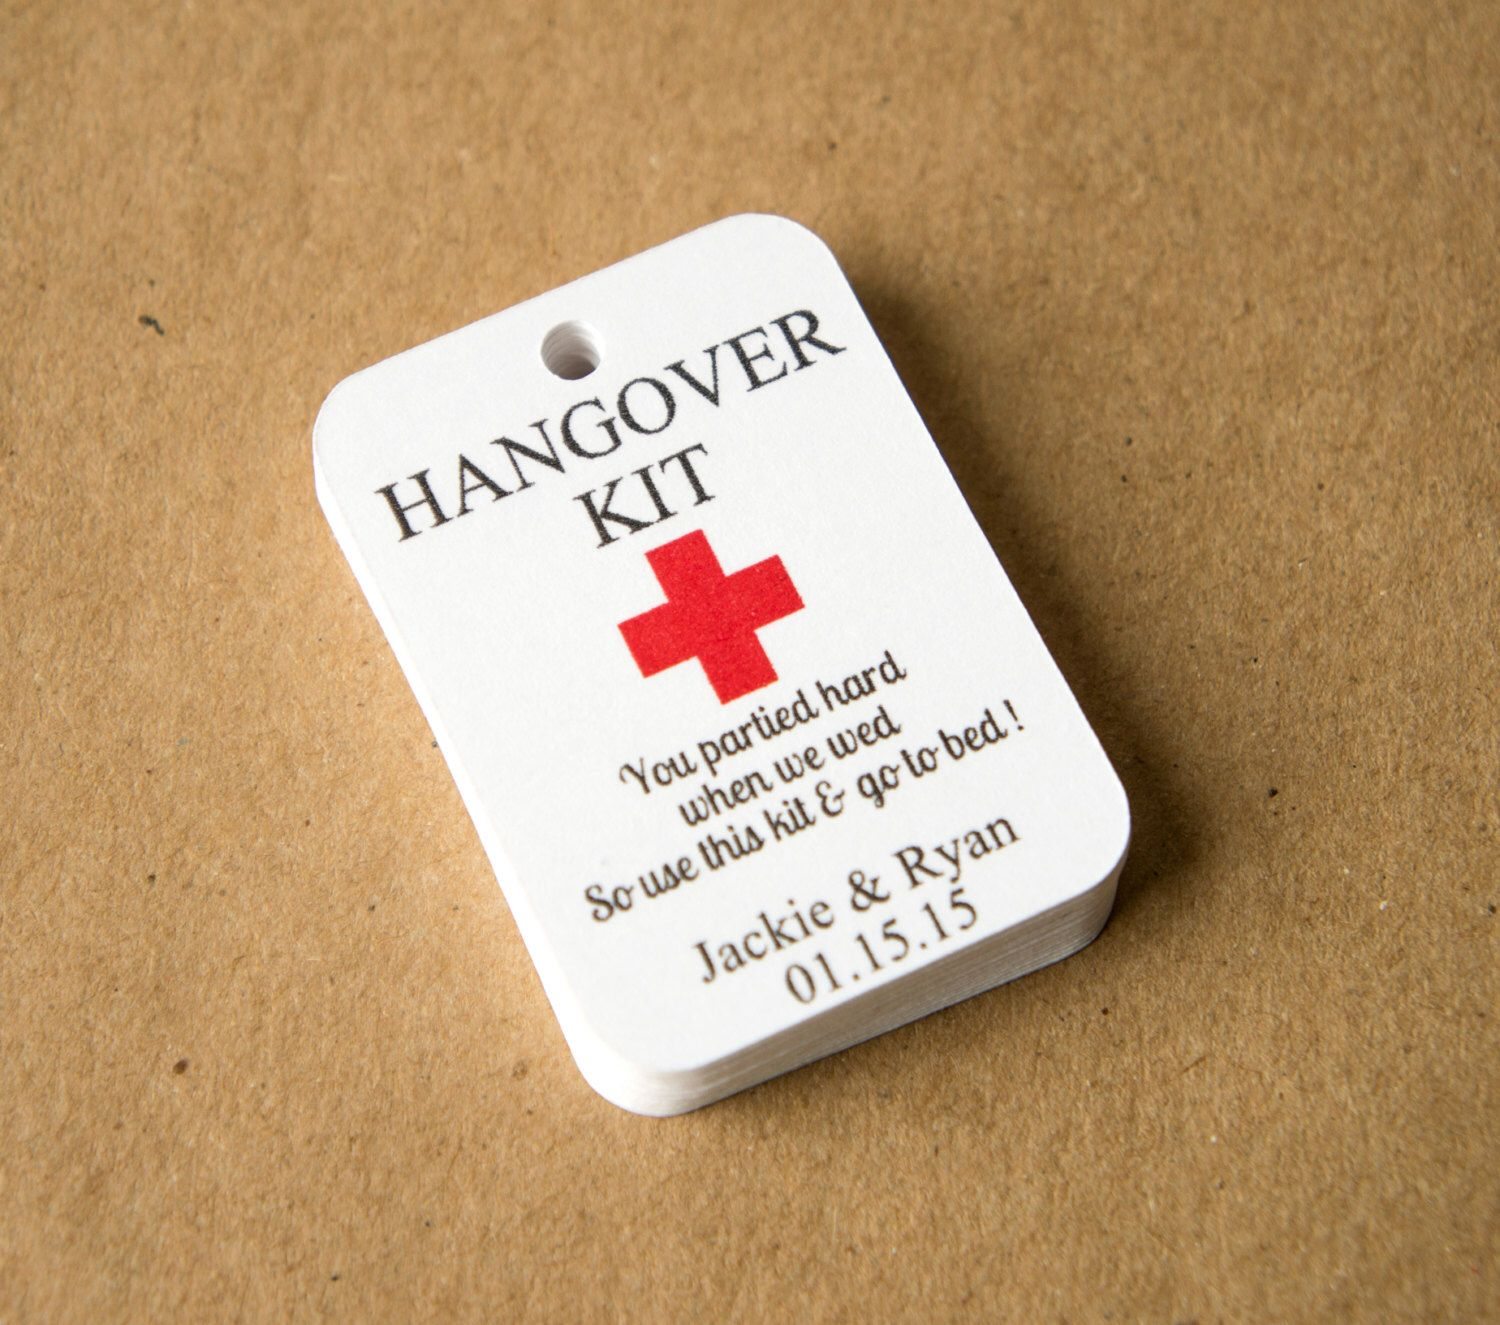 Hangover Kit Tags Hangover Kit Wedding By Twistedtreeoccasions Hangover Kit Wedding Hangover Kit Wedding Gifts For Guests